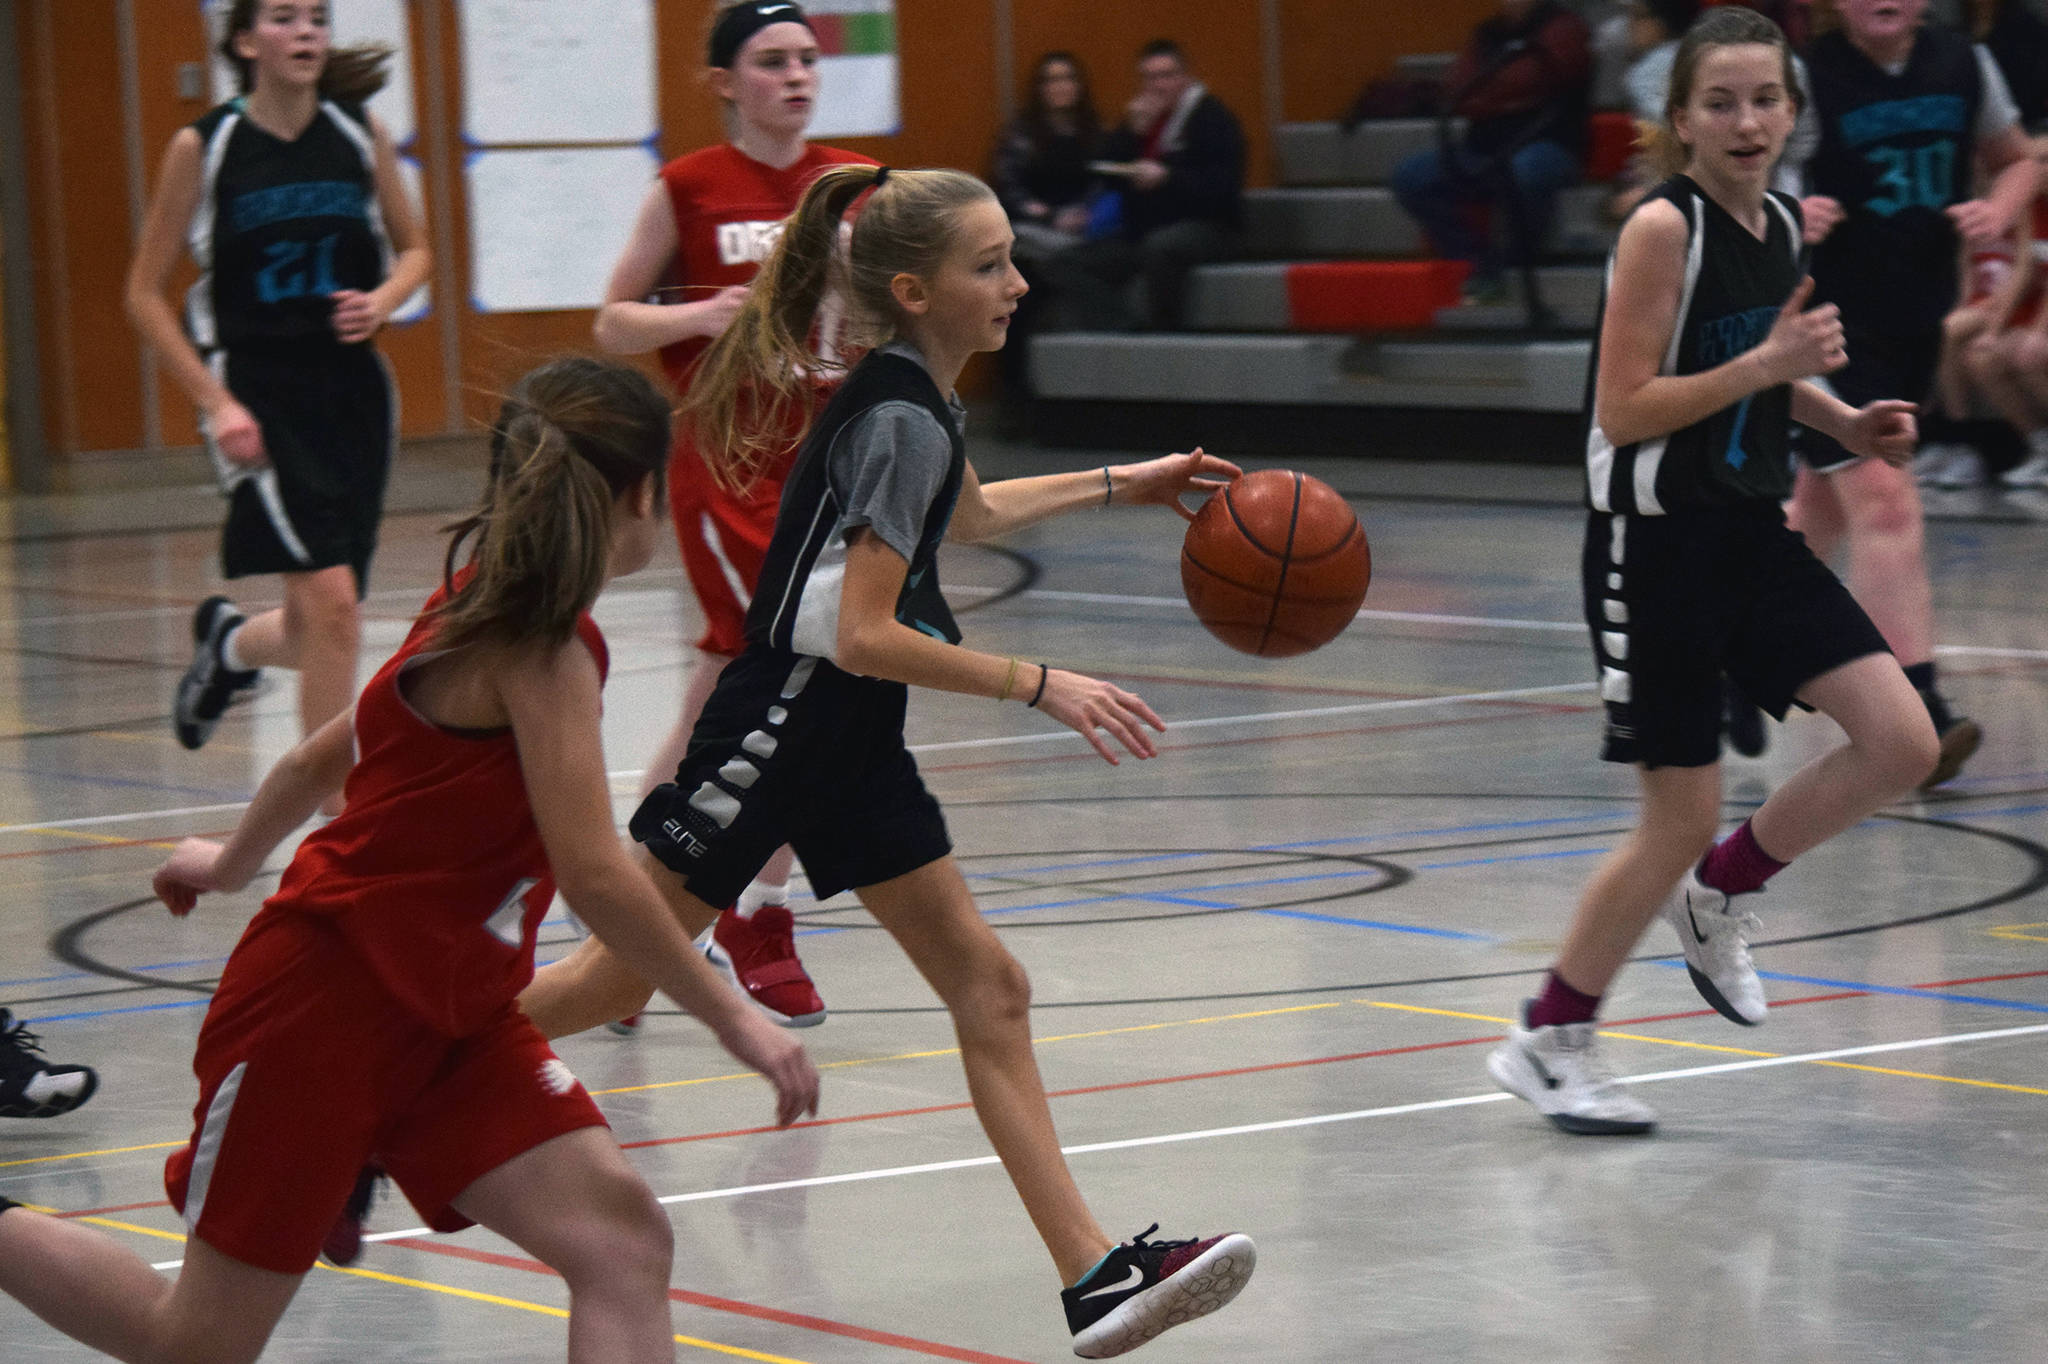 Dzantik'i Heeni's Rayna Tuckwood pushes the ball as teammate Jenna Dobson, far right, keeps pace during a round-robin game at the Icebreaker Tournament at FDMS on Friday, Dec. 6, 2019. (Nolin Ainsworth | Juneau Empire)